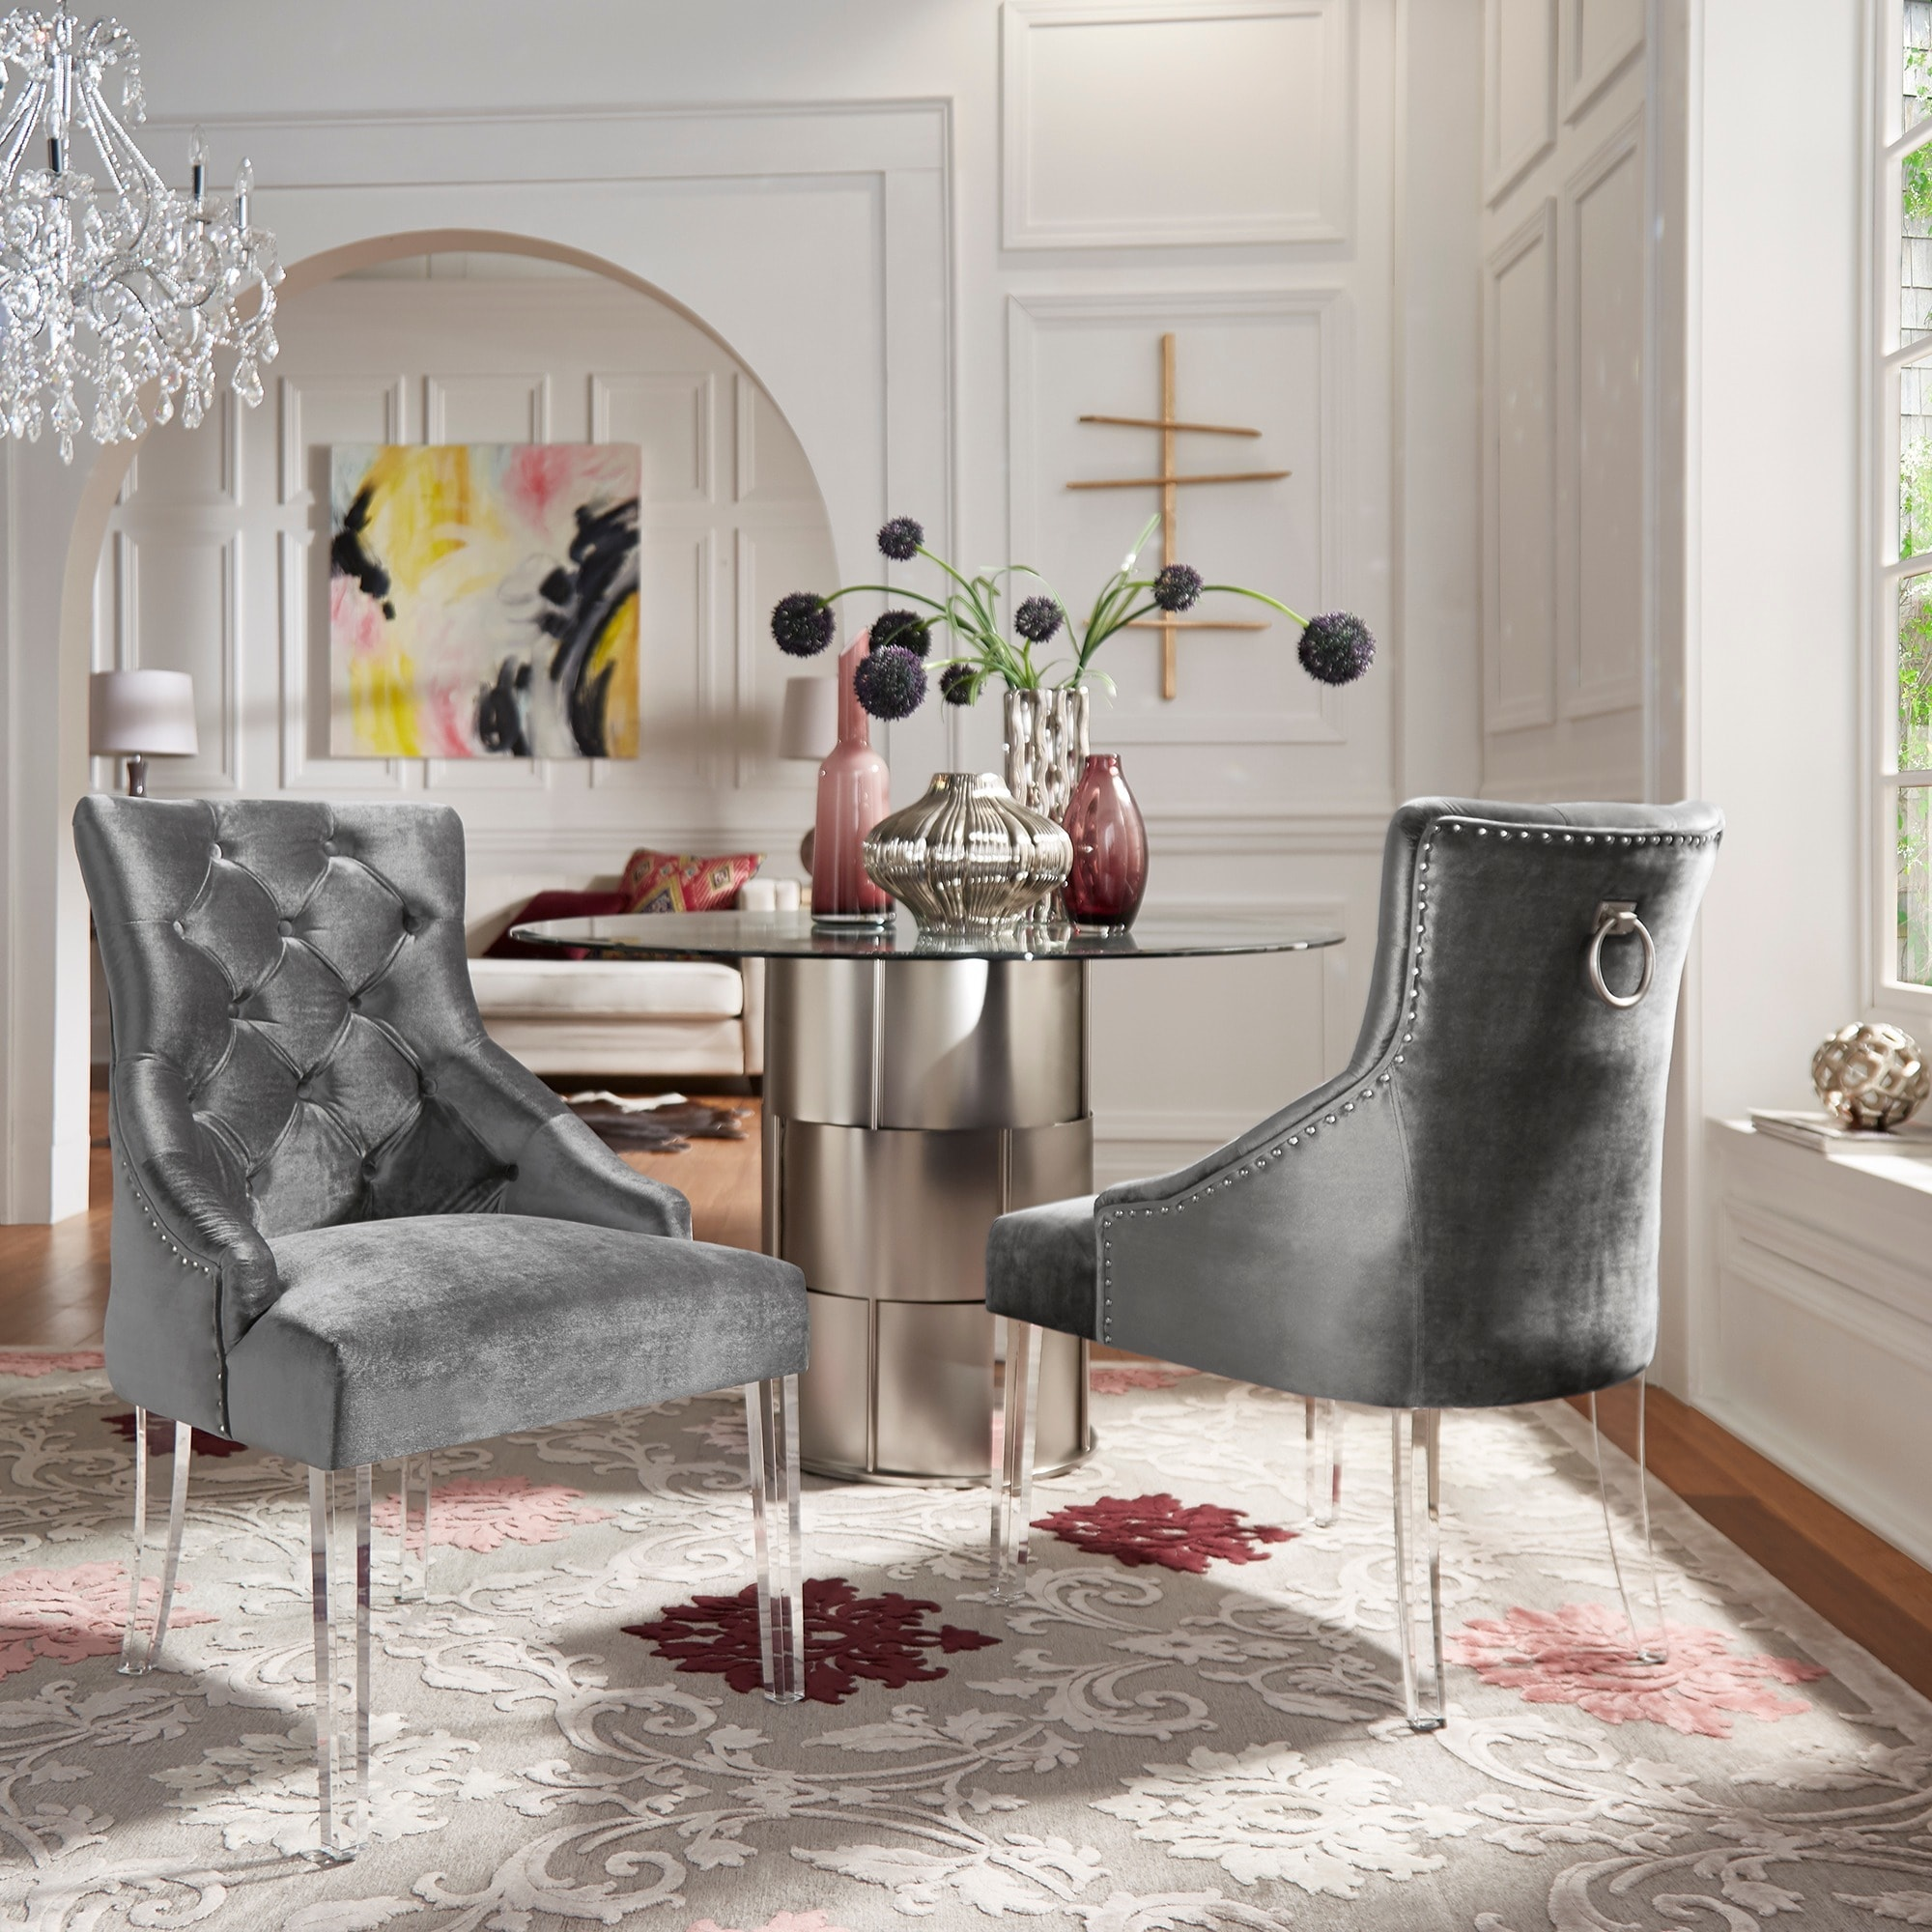 Shop Gina Velvet Tufted Dining Chair Set Of 2 With Acrylic Legs By Inspire Q Bold On Sale Overstock 22974122 Blue